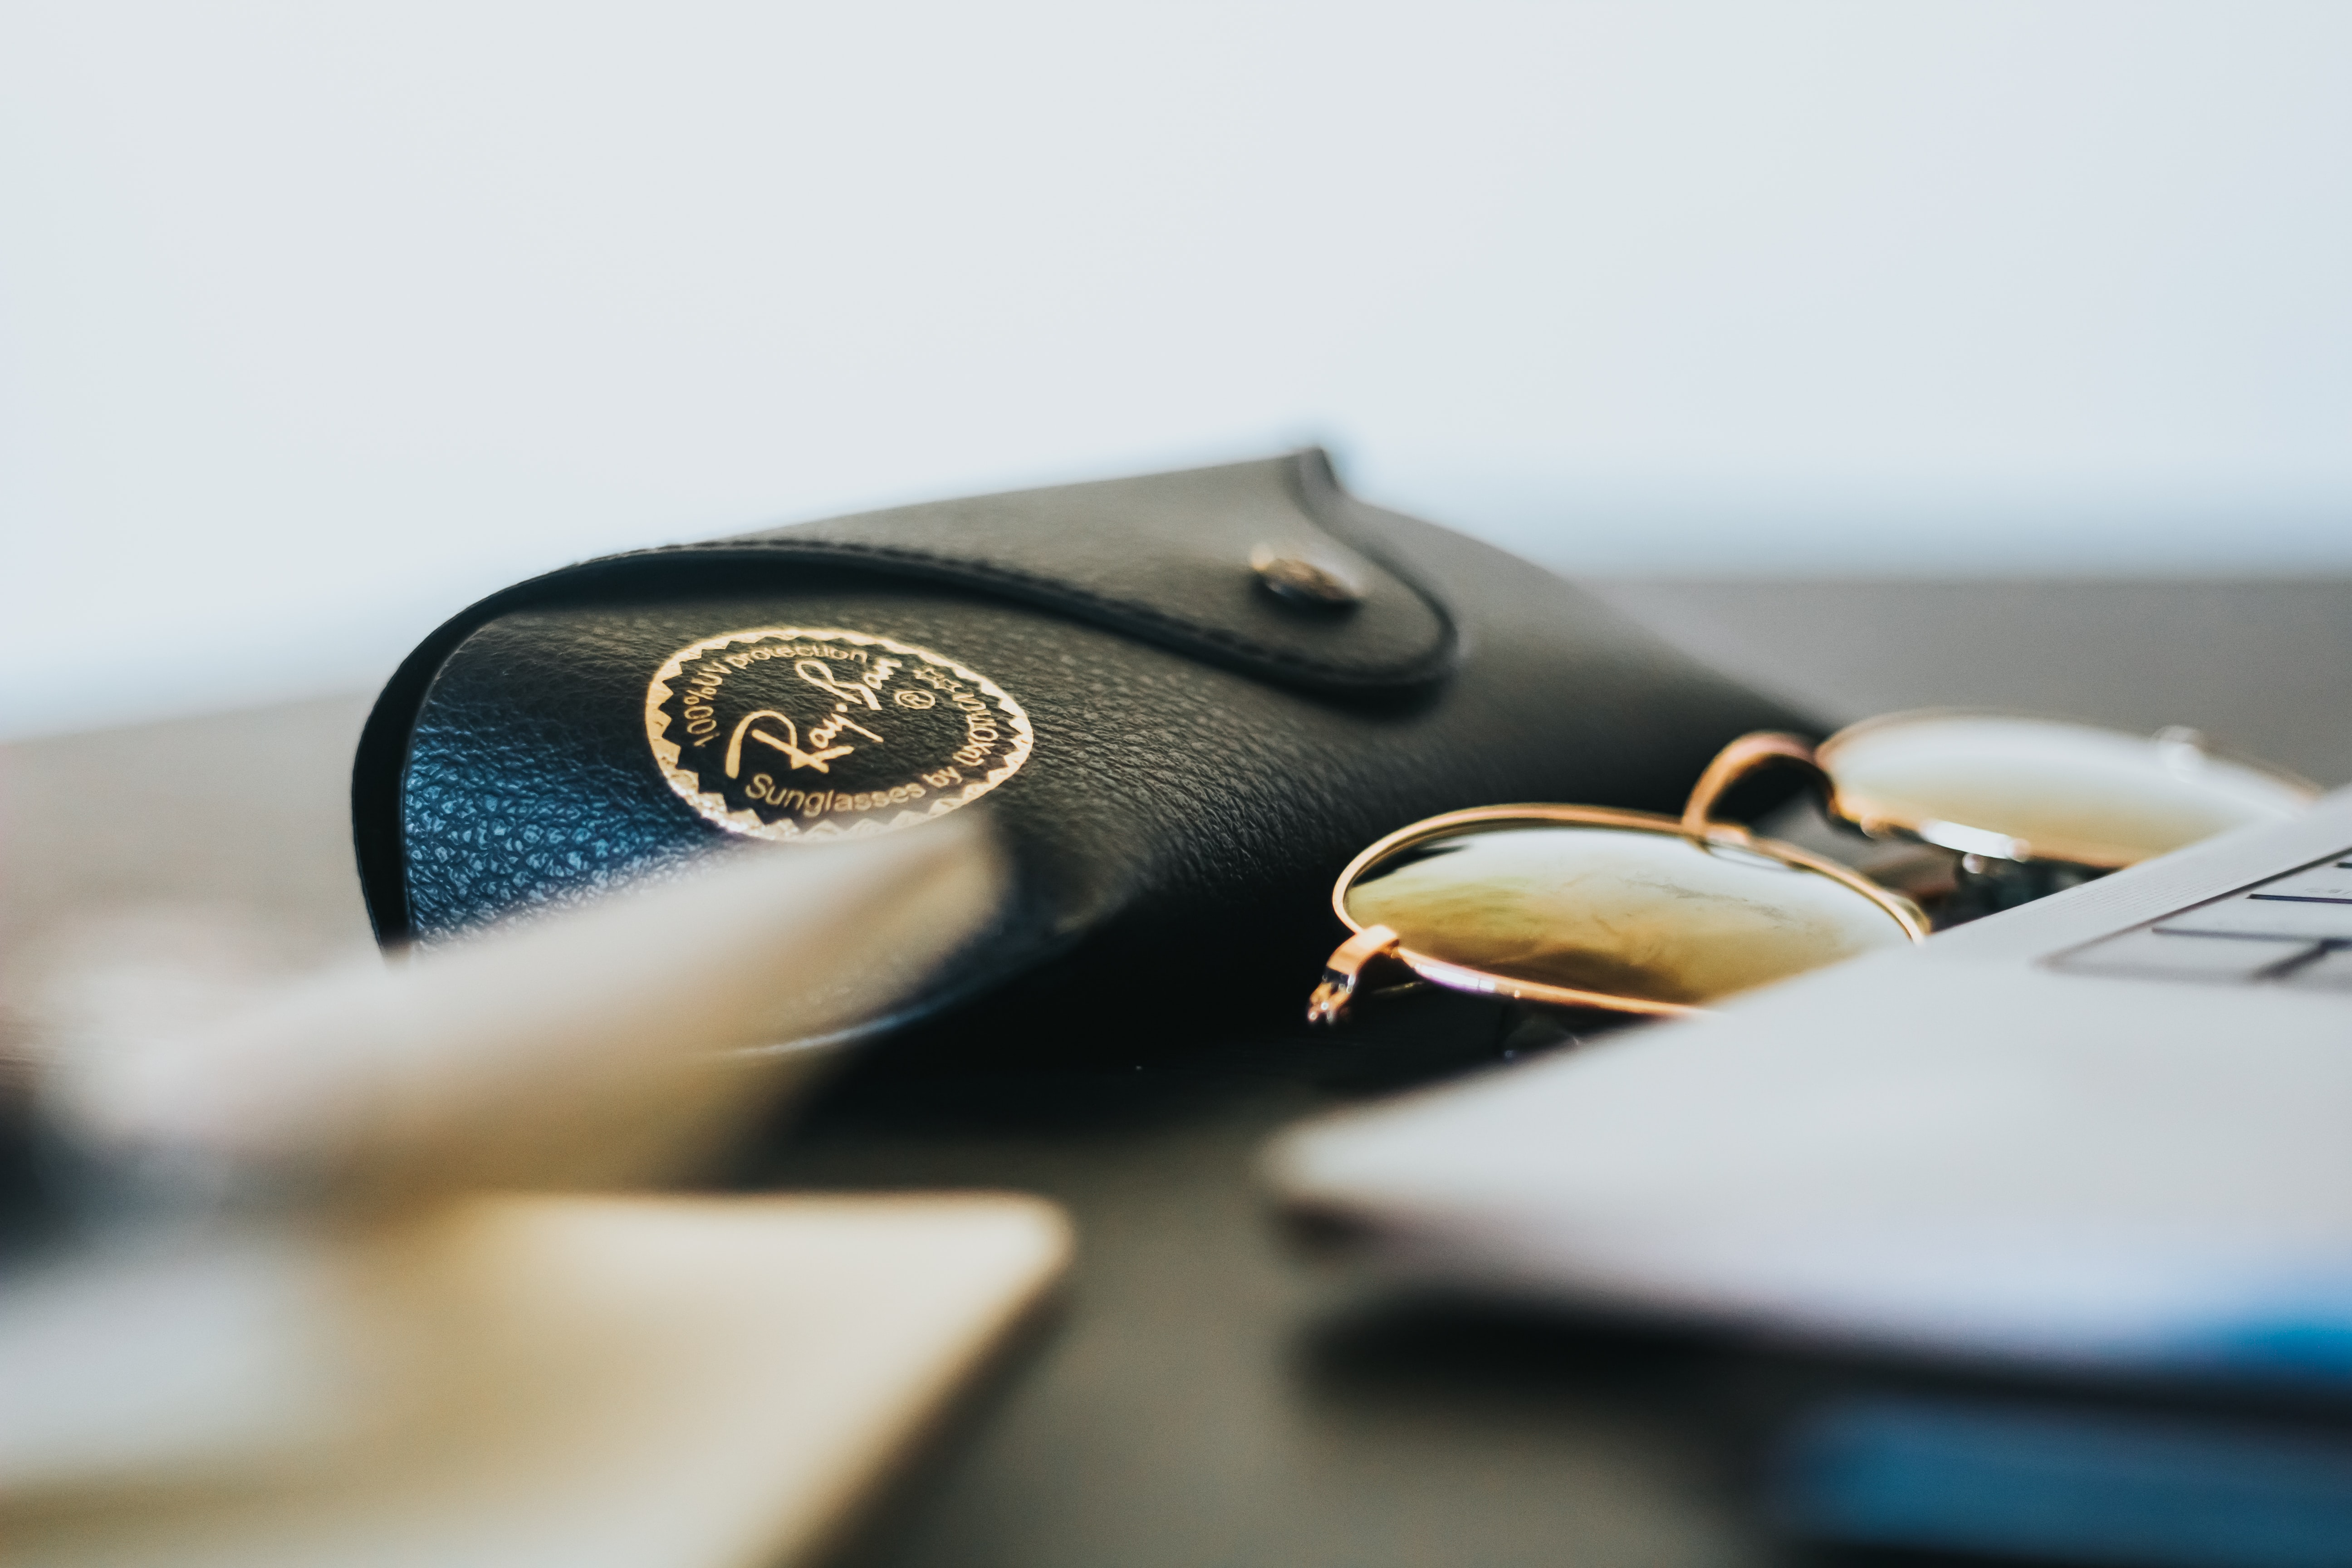 black Ray-Ban sunglasses with leather case